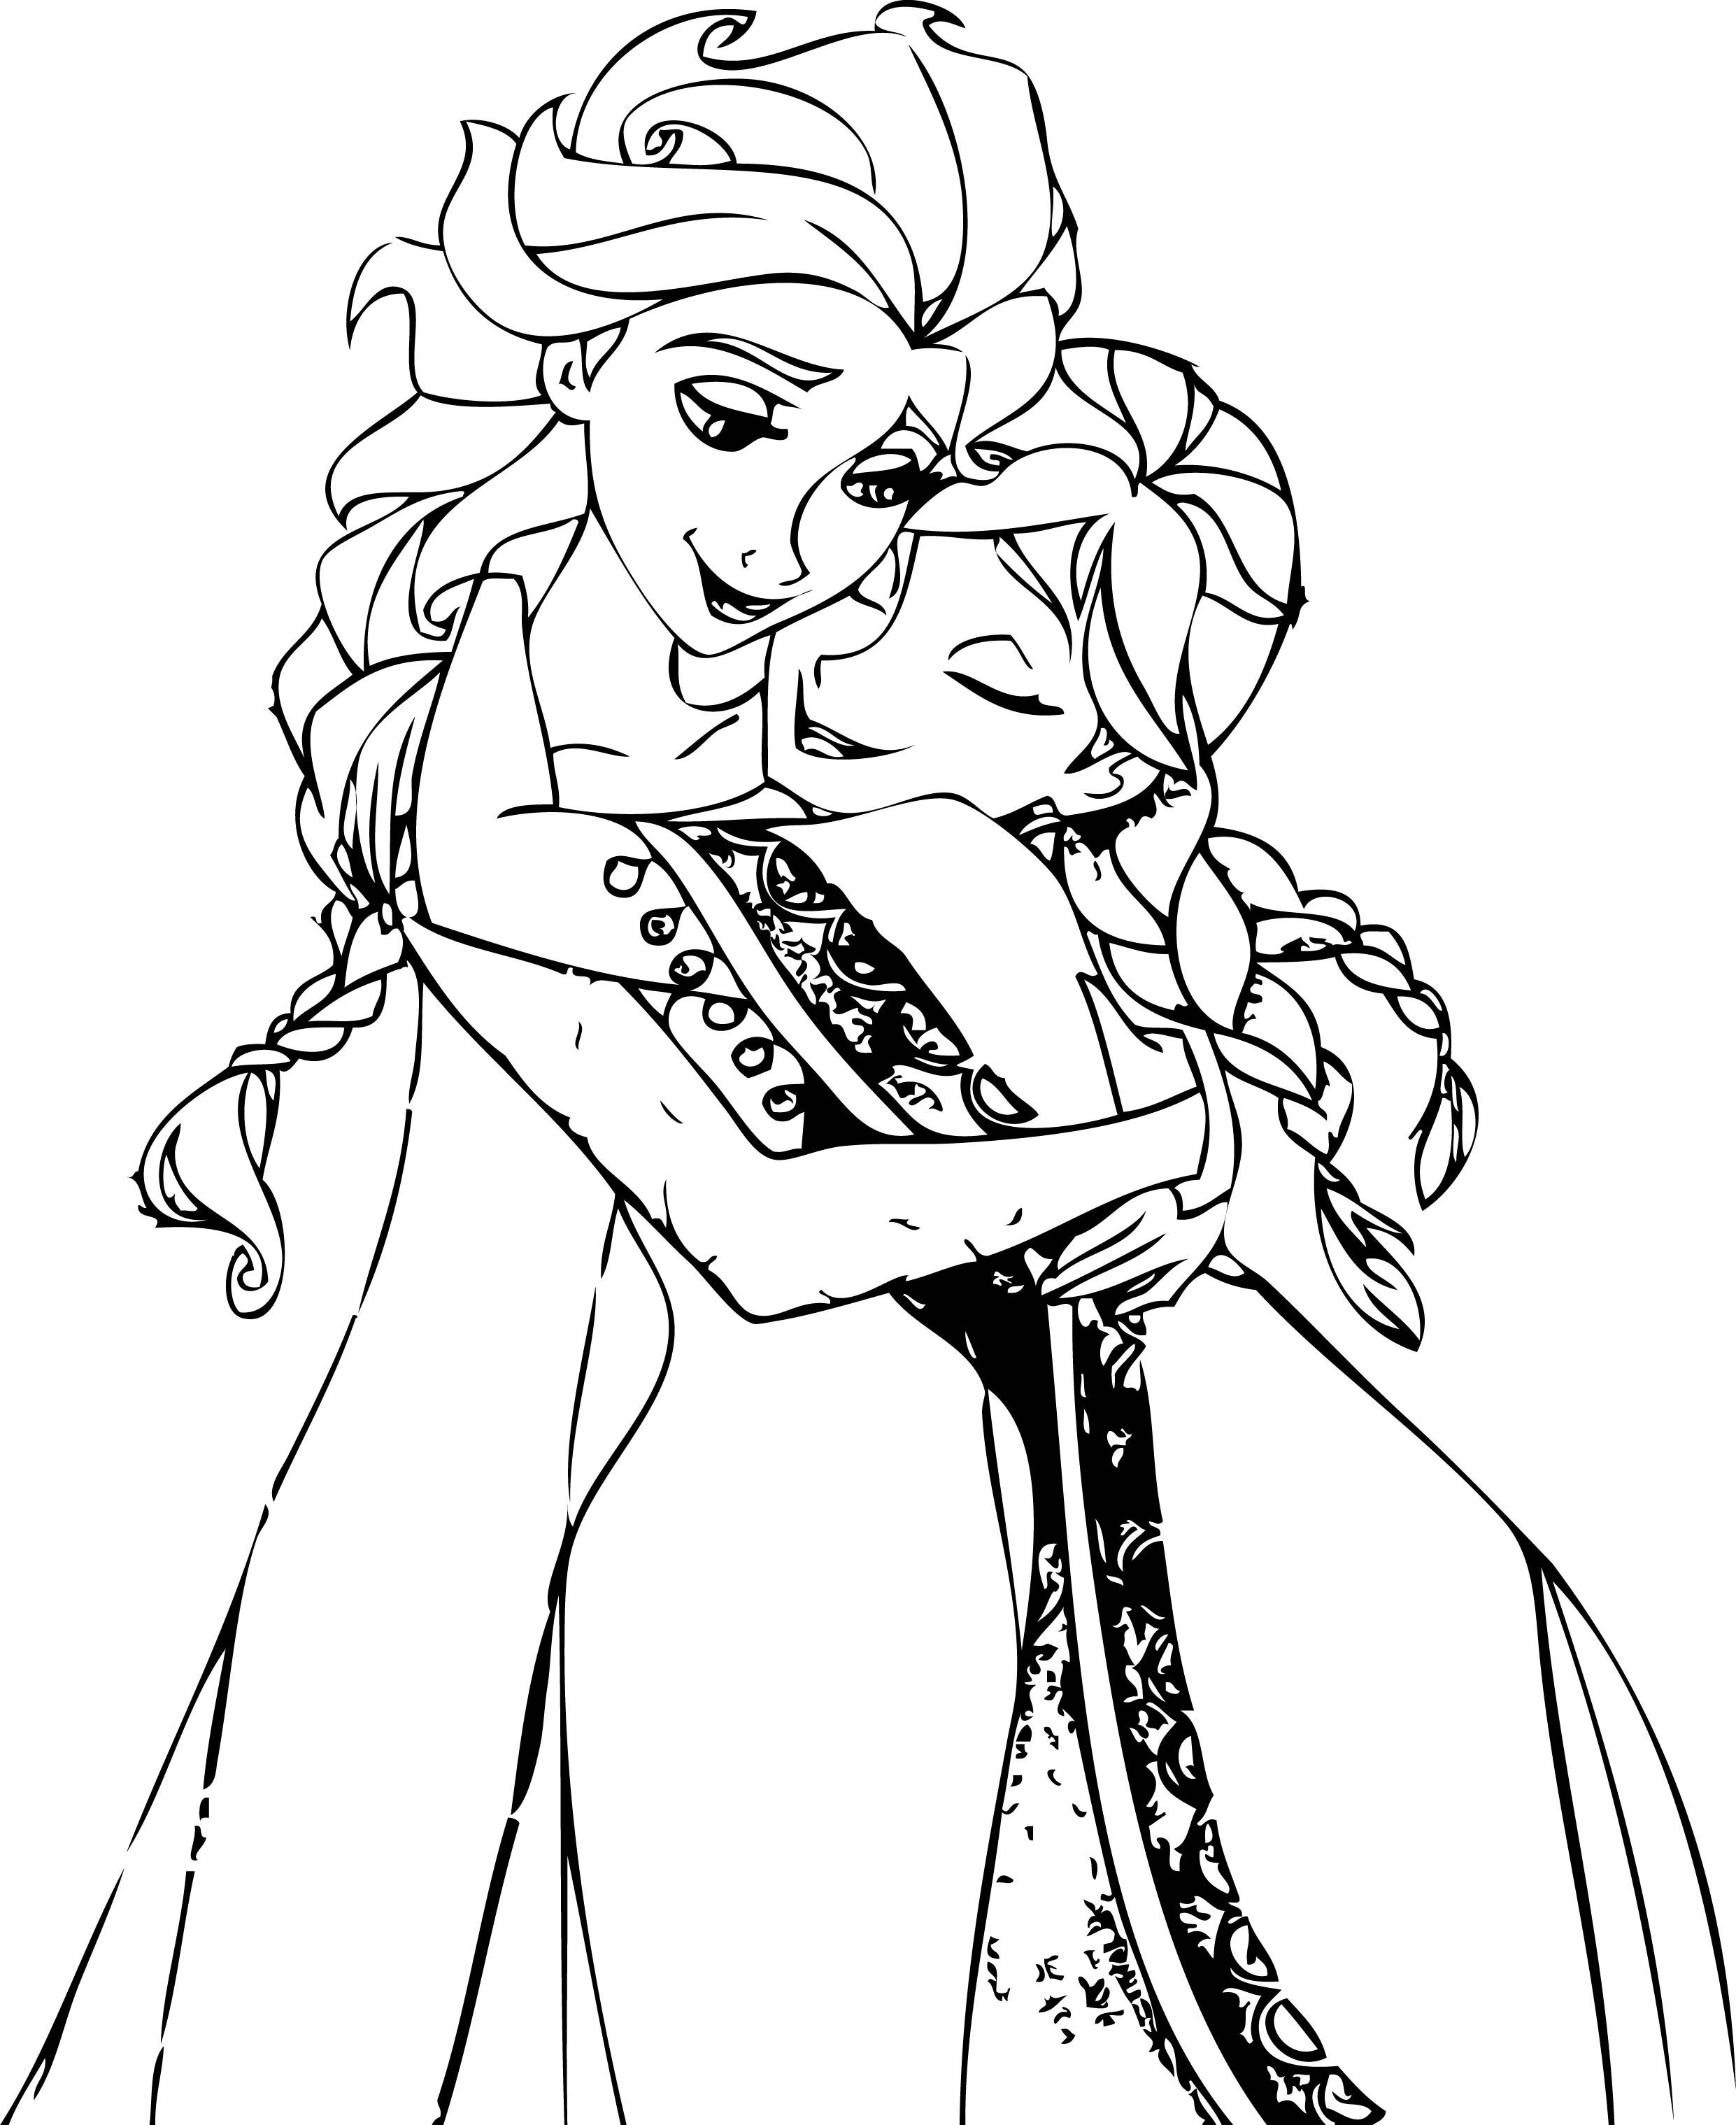 elsa and anna pictures to color 23 stunning anna and elsa coloring pages photo ideas elsa and color to pictures anna